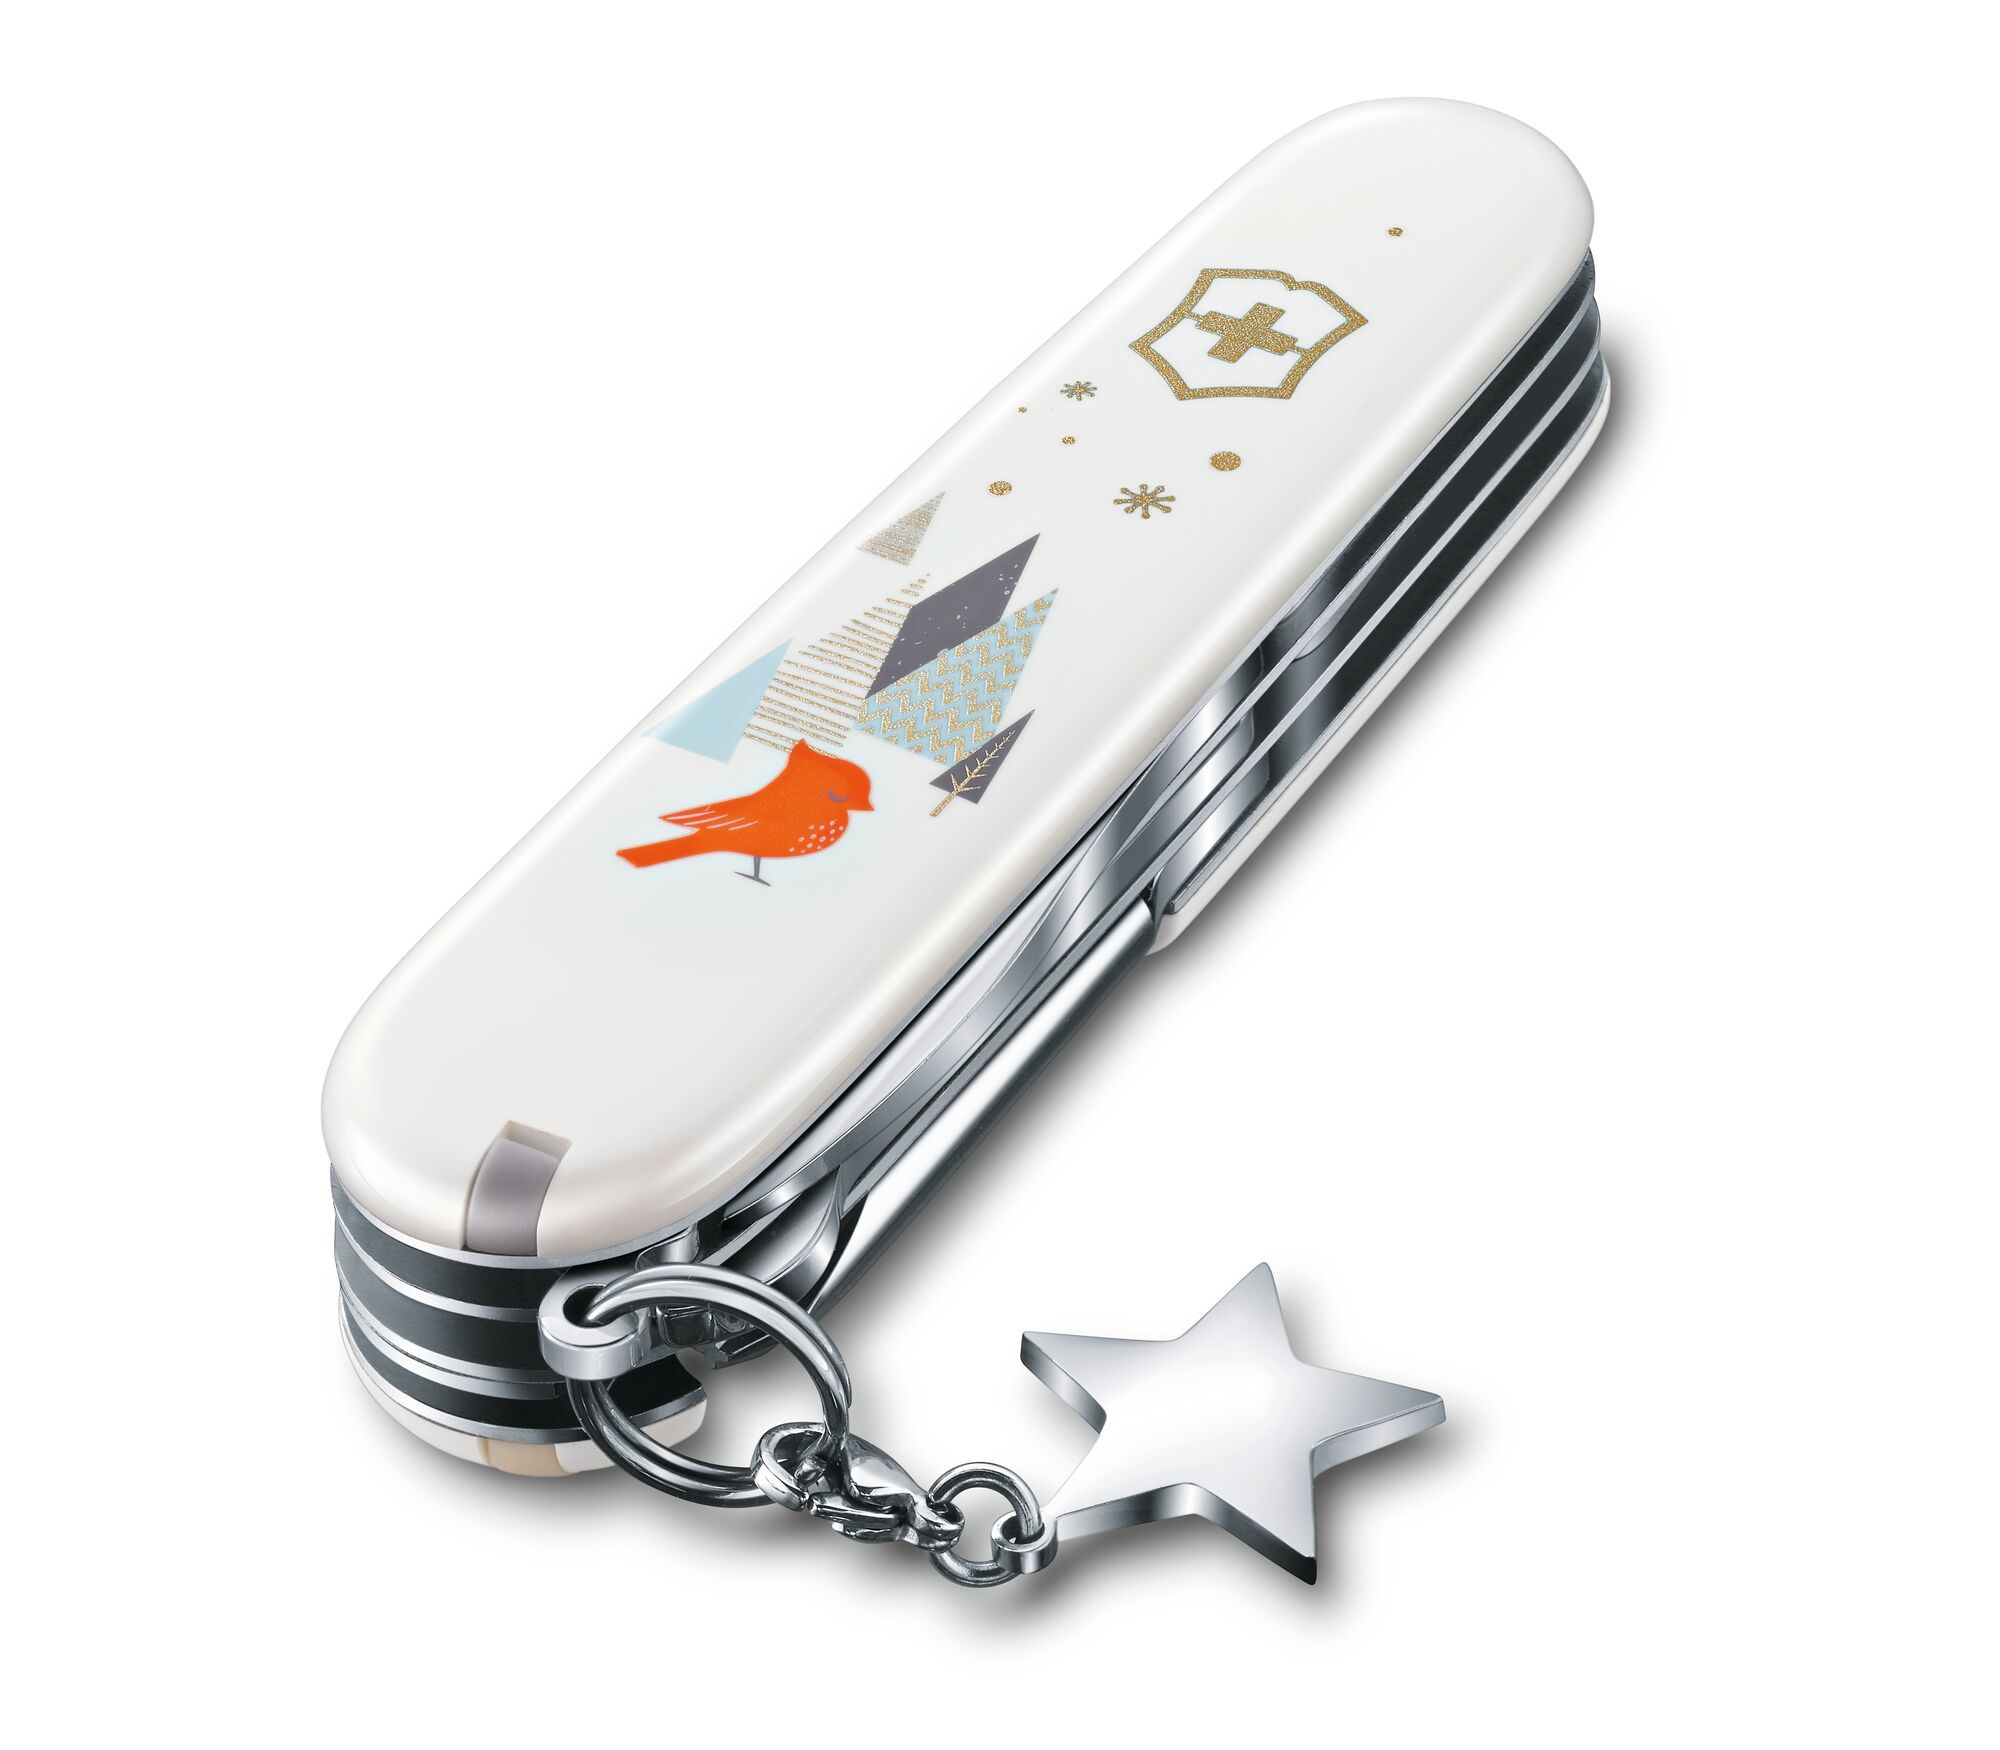 Складной коллекционный нож Victorinox Super Tinker Winter Magic Special Edition 2019 (1.4703.7E1) - Wenger-Victorinox.Ru